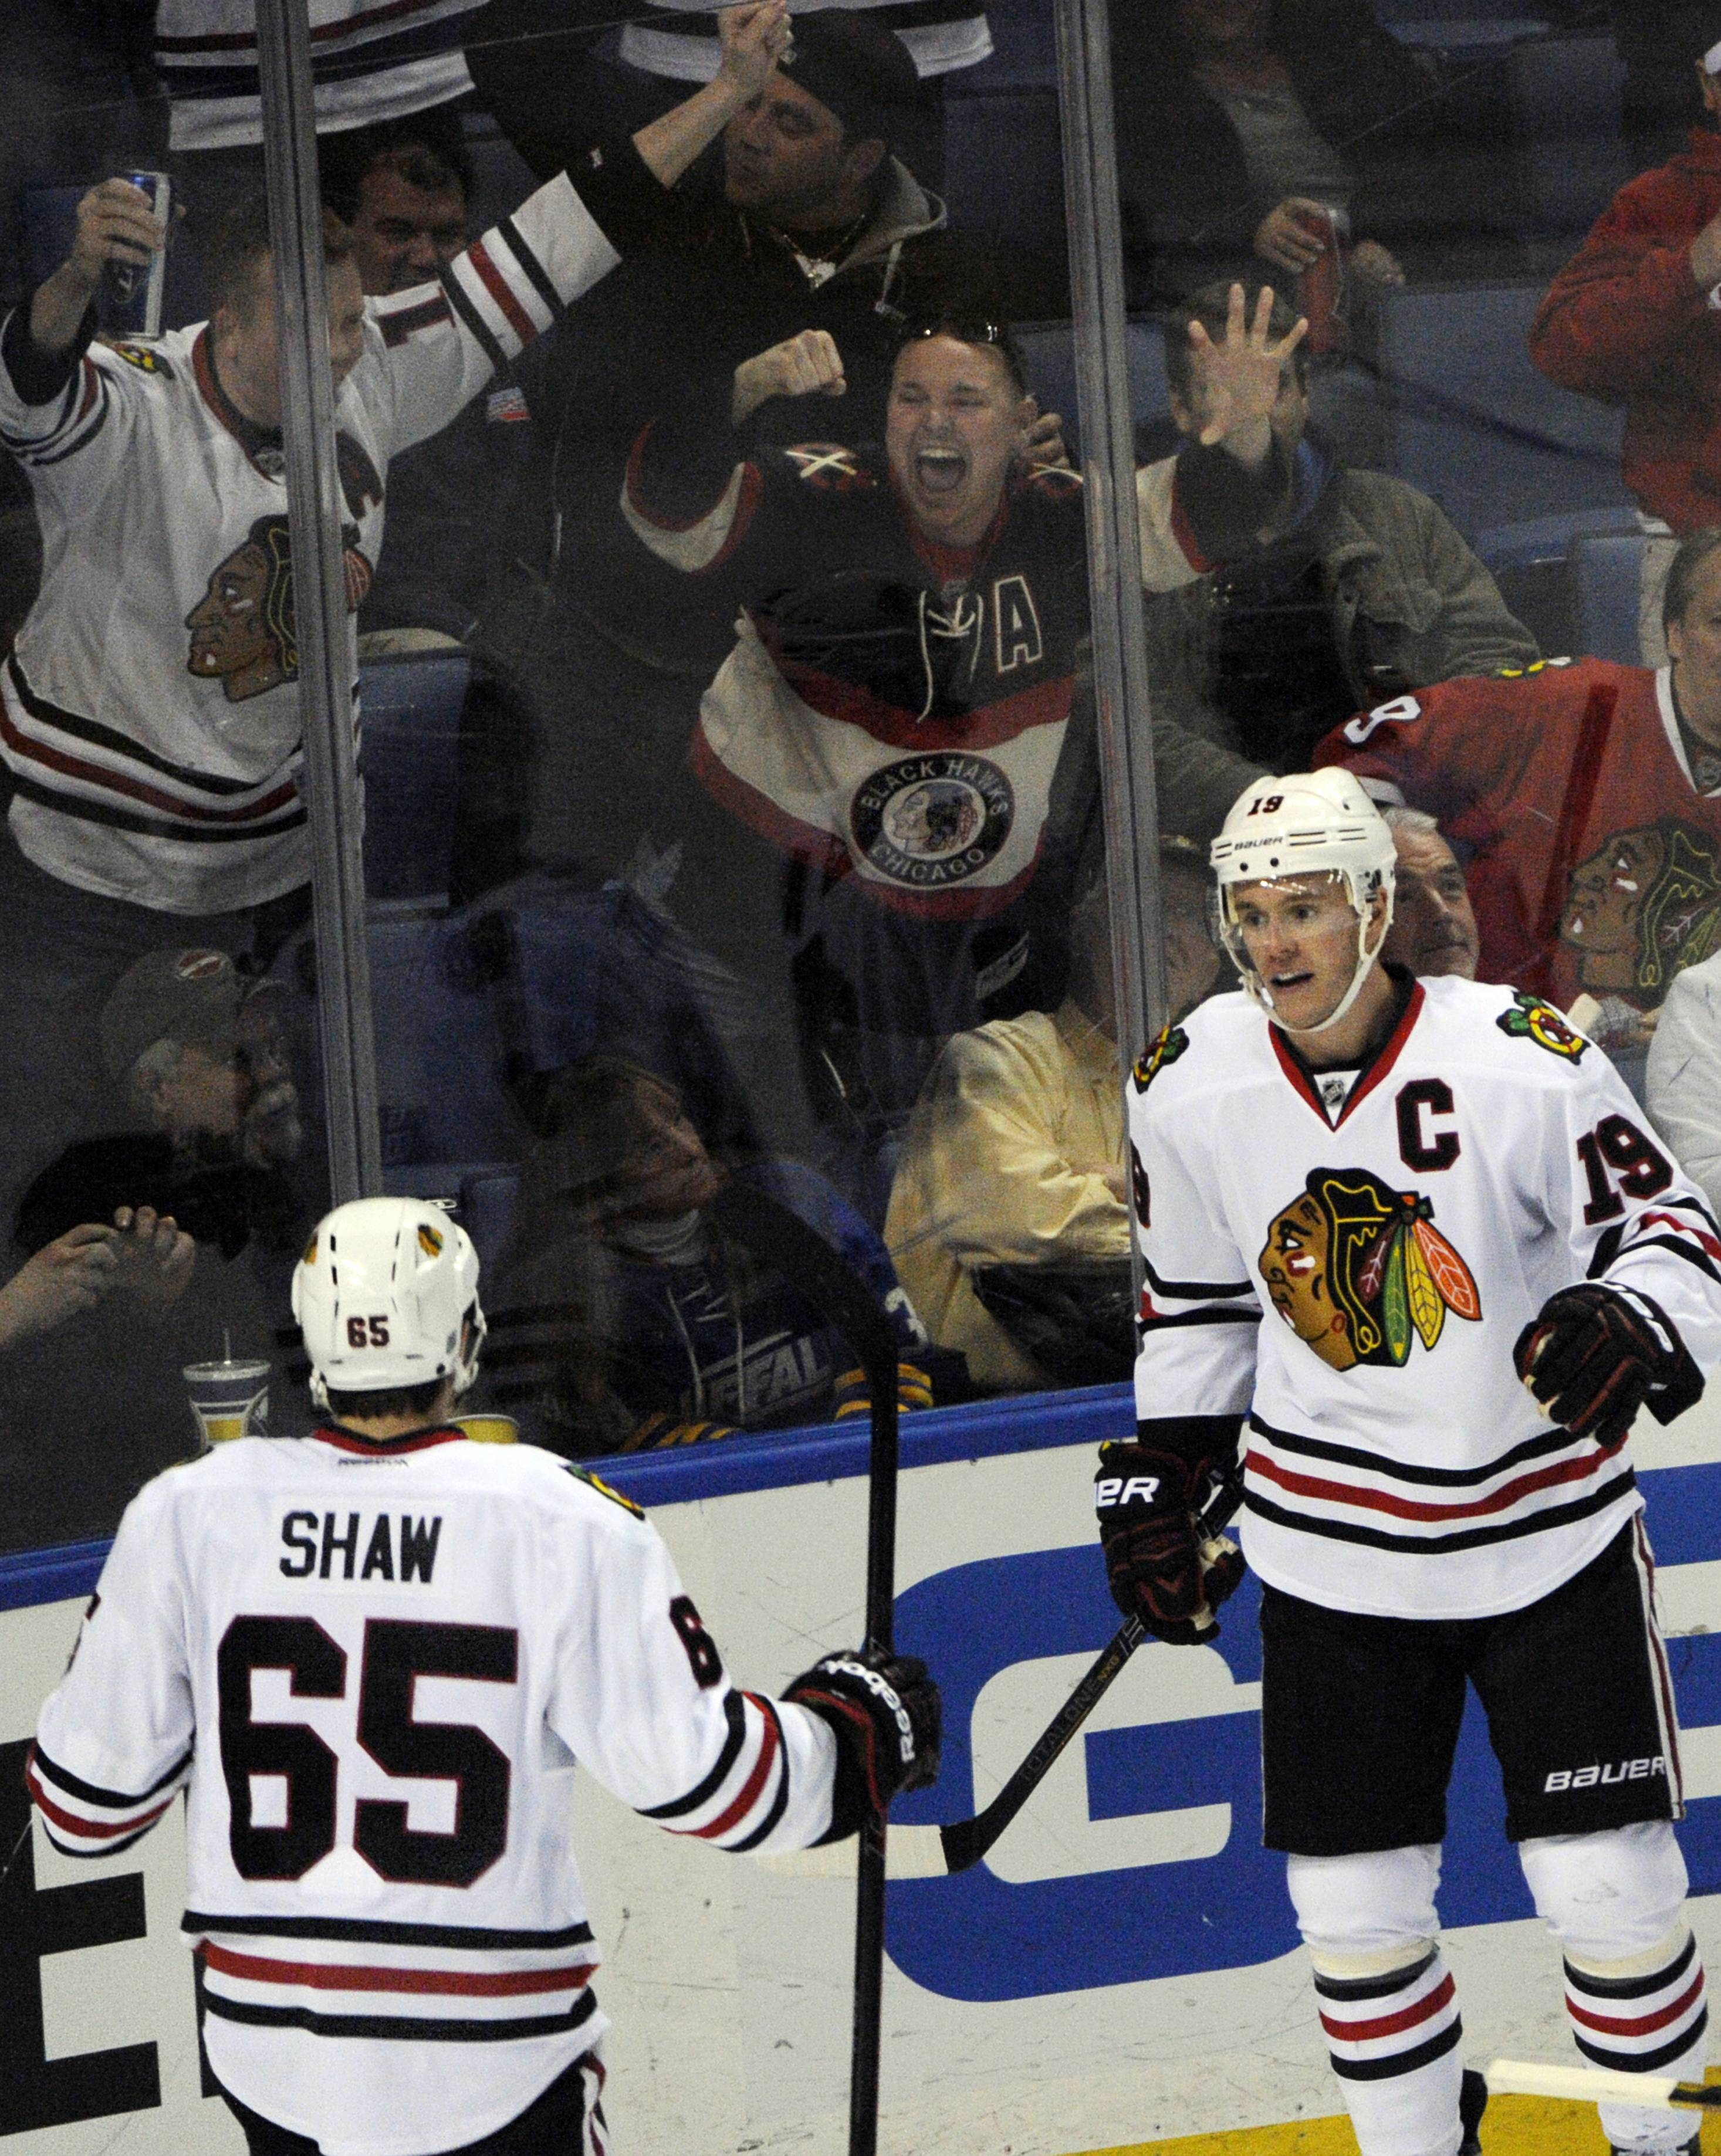 Chicago Black Hawks center Andrew Shaw (65) celebrates with center Jonathan Toews (19) after Toews scored the game-winning goal during the third period against the Buffalo Sabres in Buffalo, N.Y., Sunday.